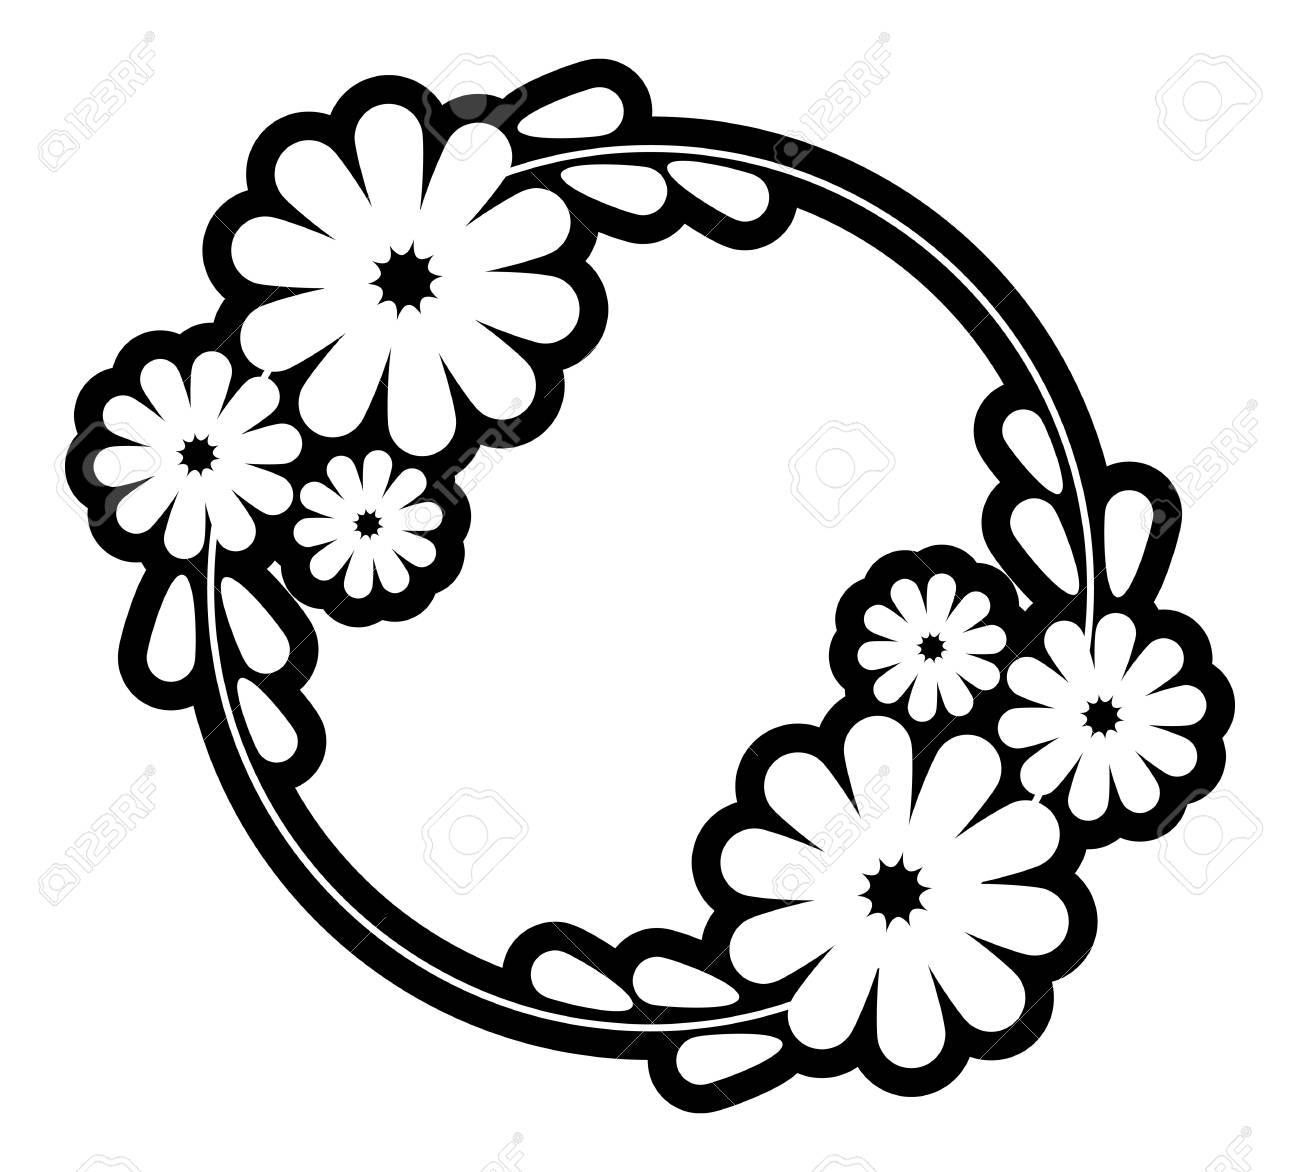 black and white silhouette round frame with decorative flowers rh 123rf com flower vector line art flower vector art png